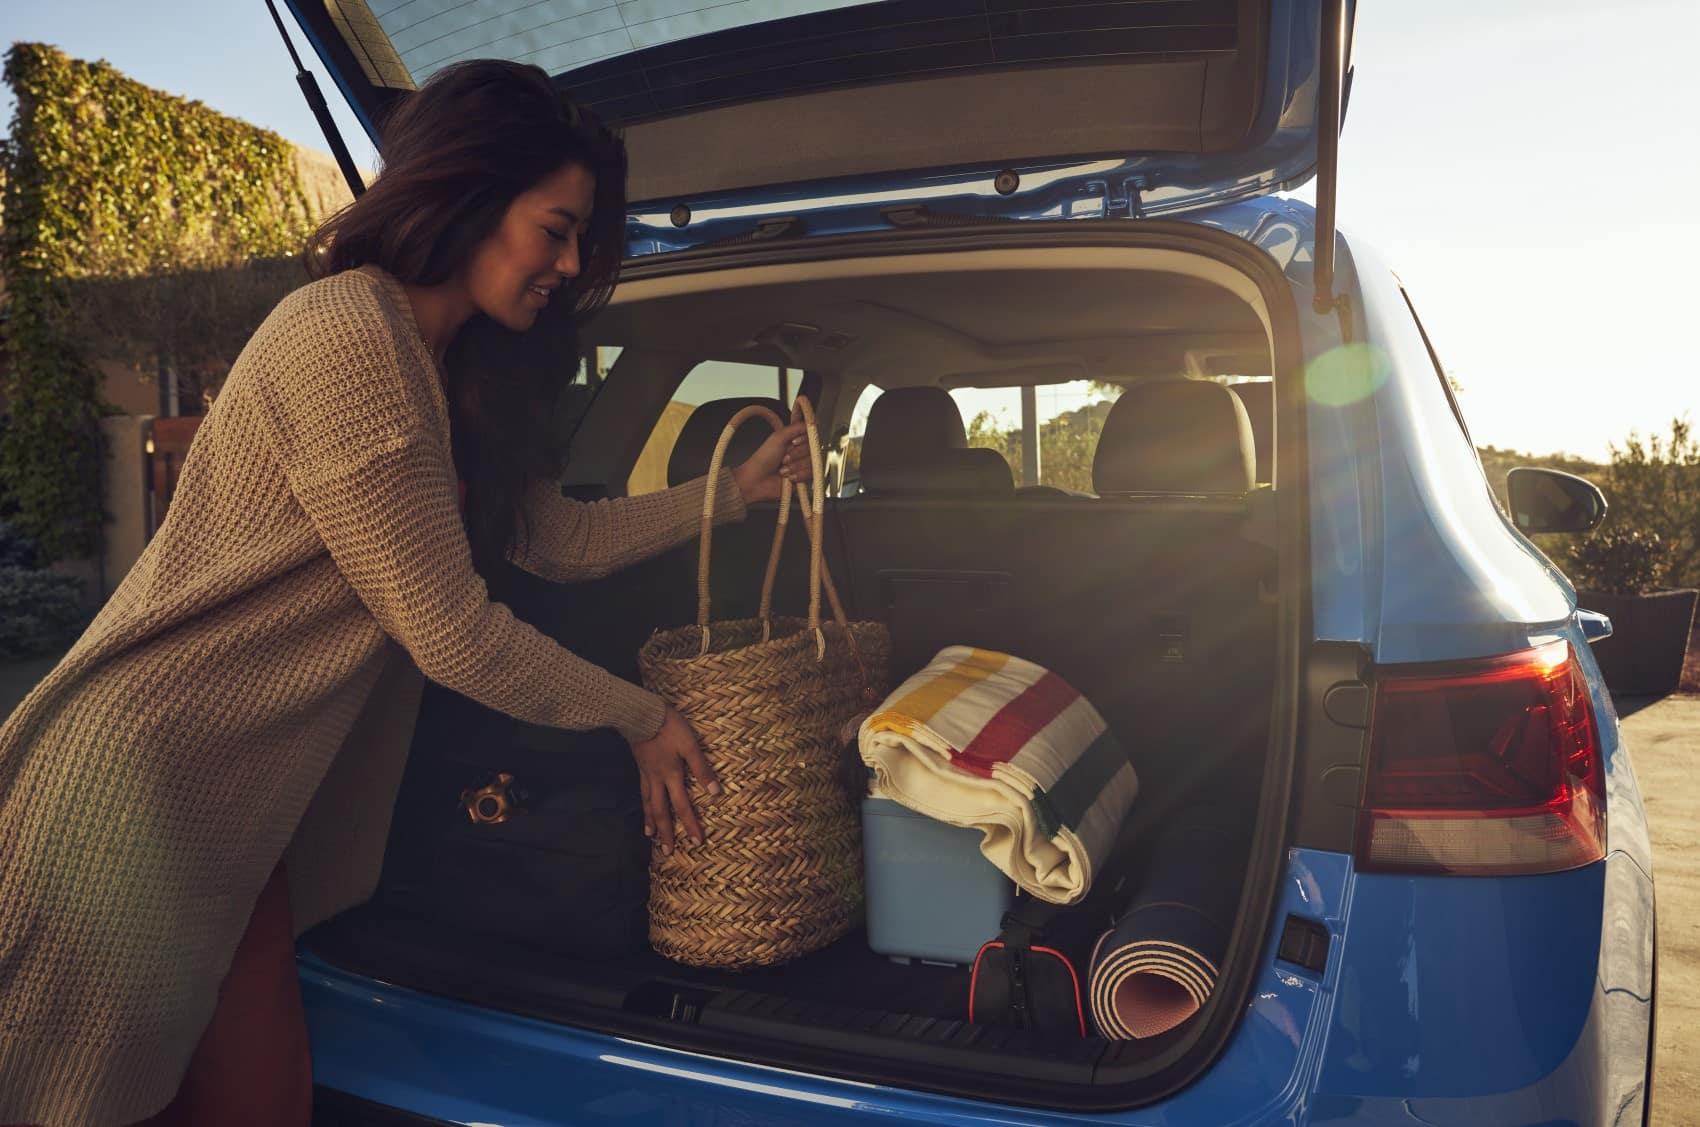 2022 Volkswagen Taos blue cargo area rear hatch up woman packing bags